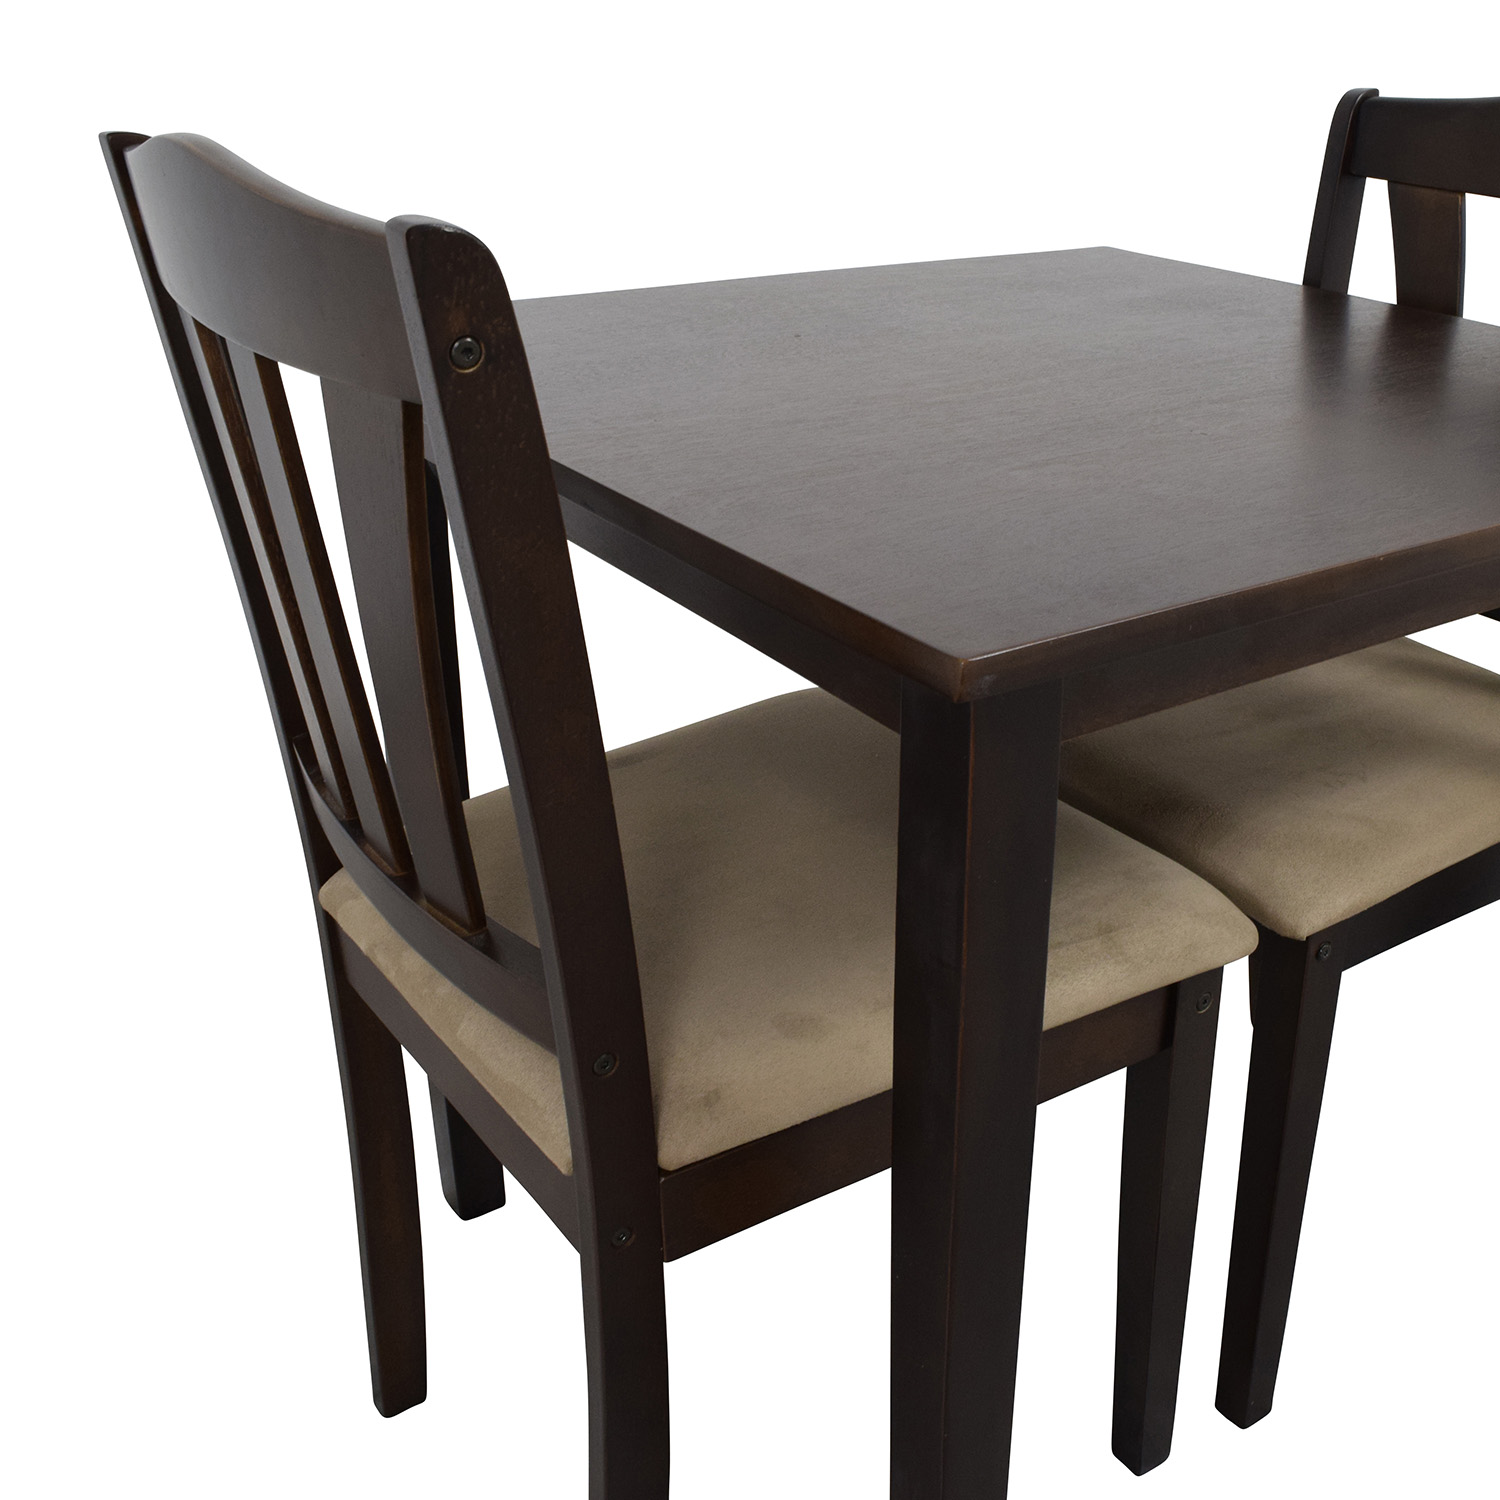 46 off wood dining table and beige upholstered chairs for Wooden dining table chairs